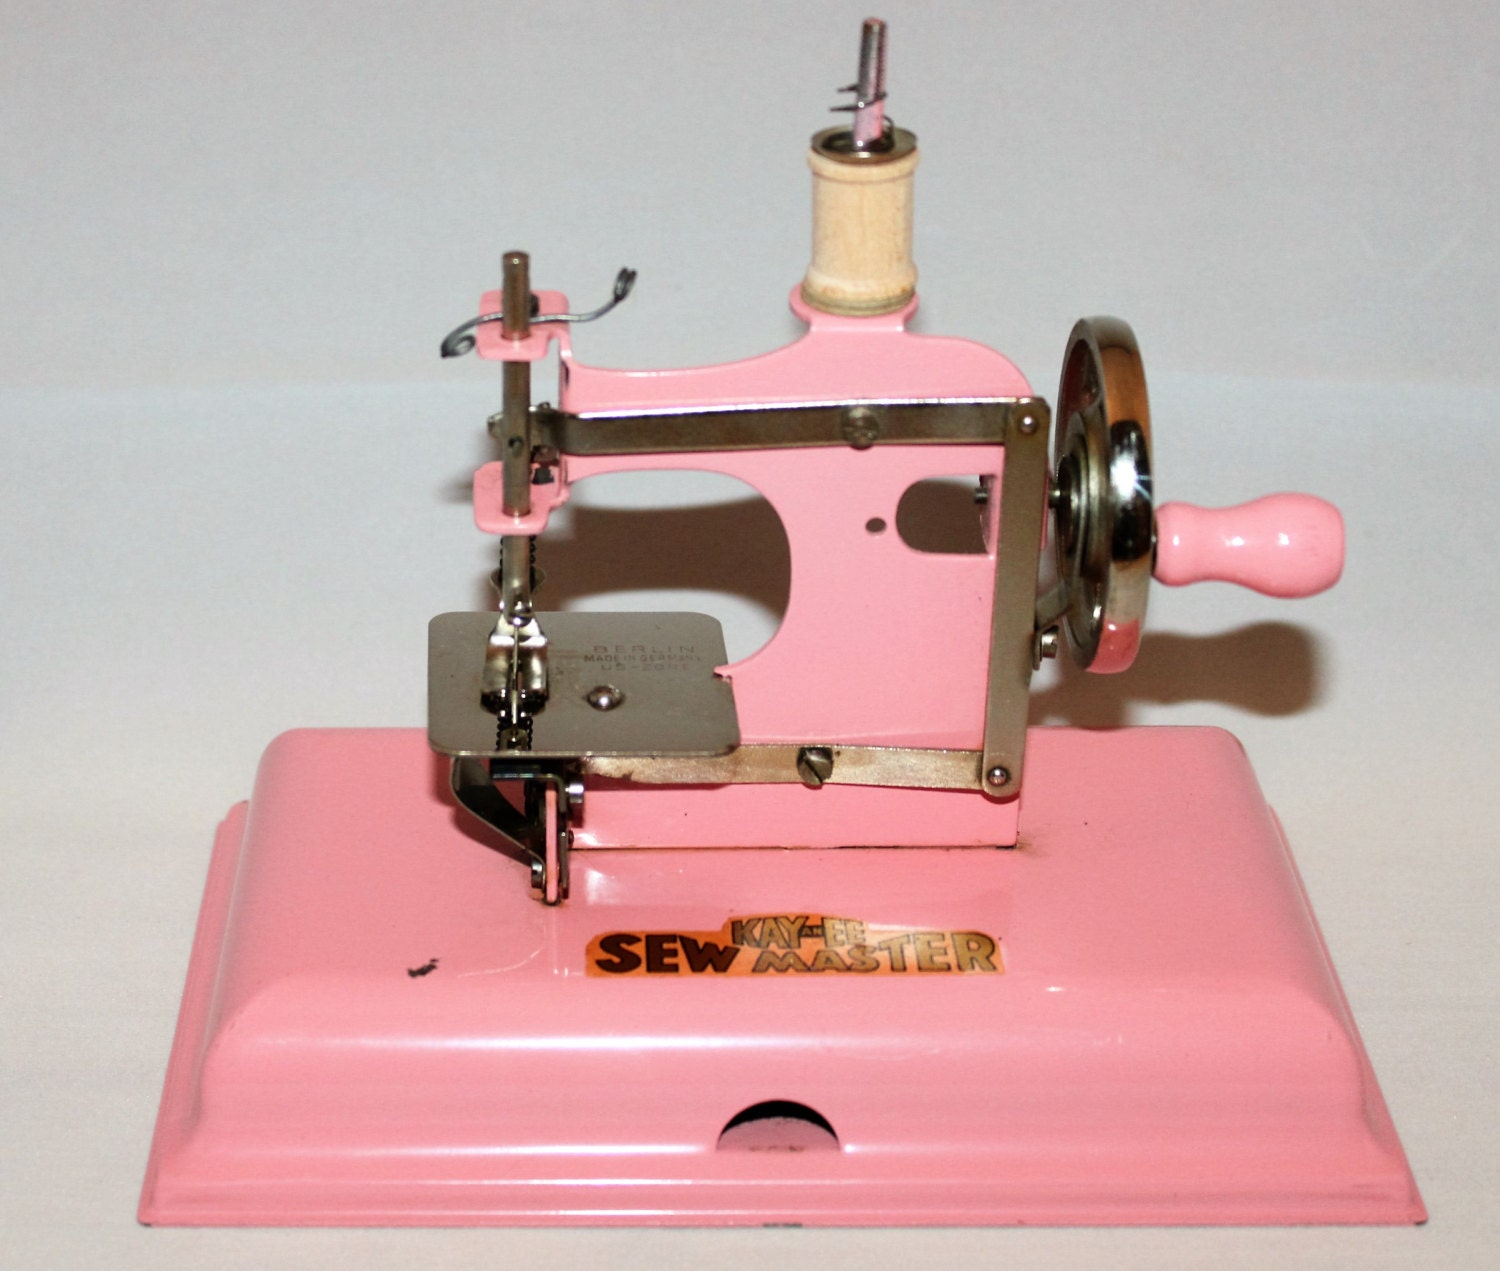 kayanee sewing machine